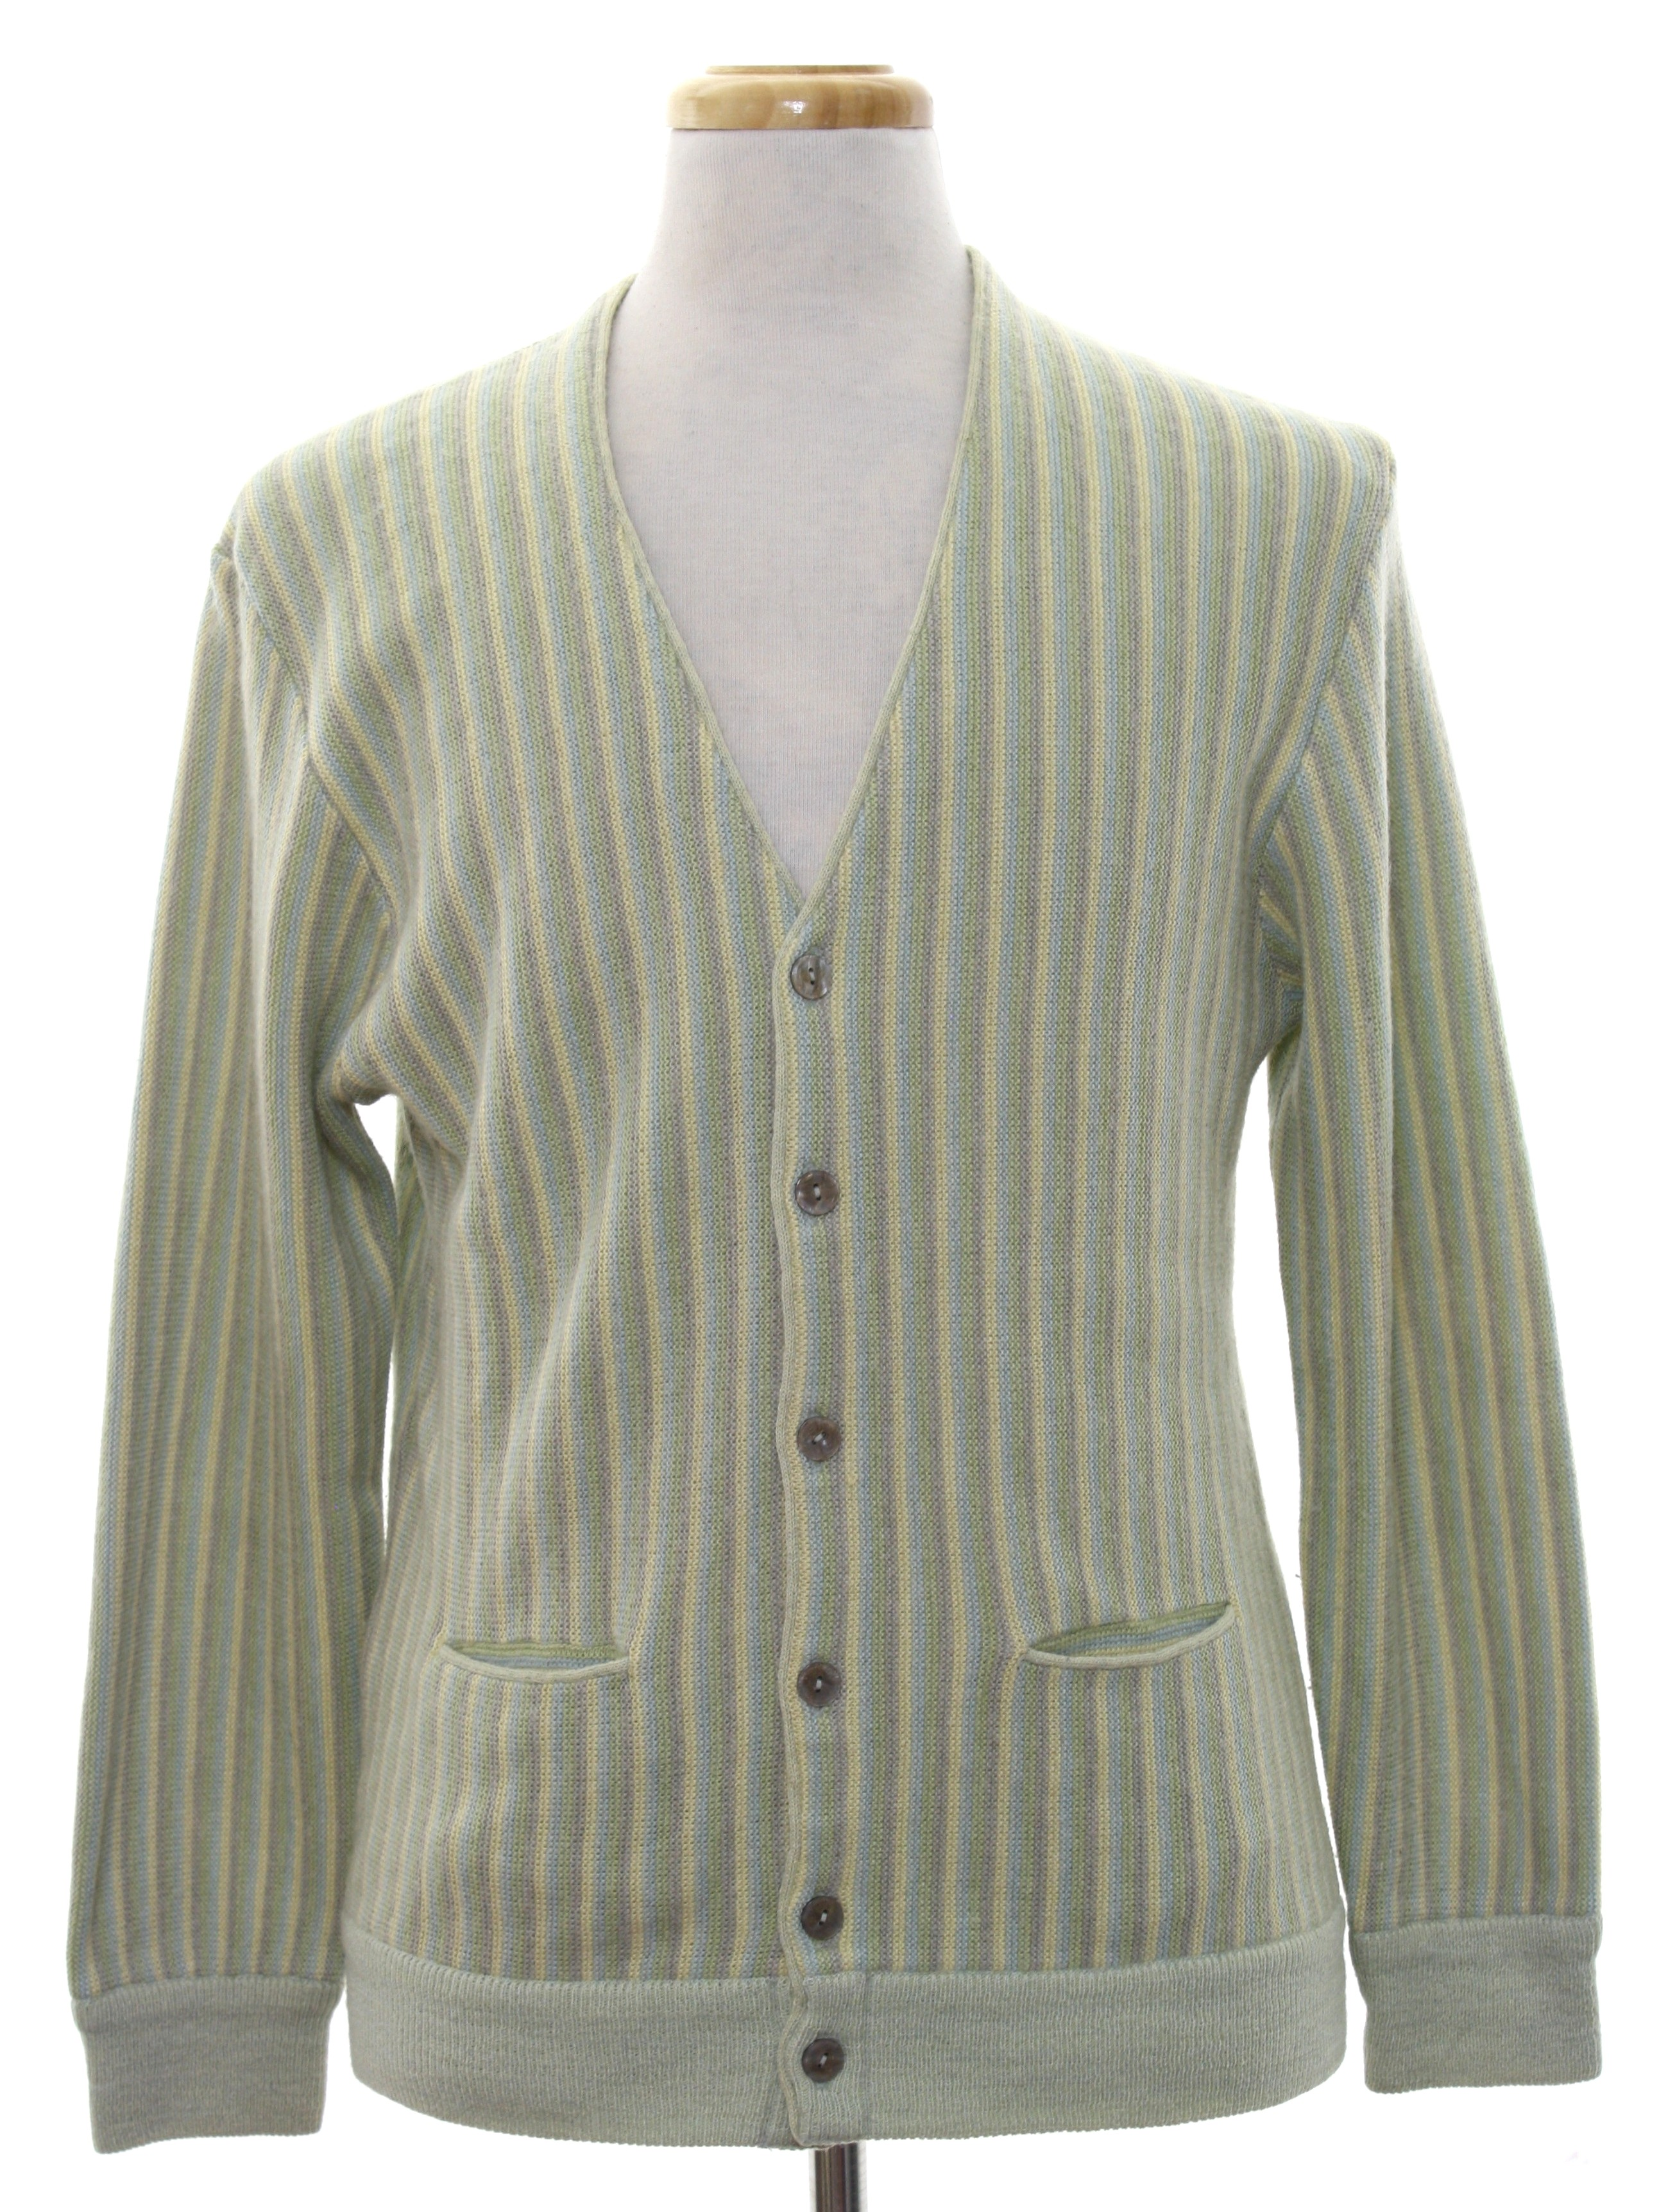 1960's Retro Caridgan Sweater: 60s style -Oneman- Mens Light green ...